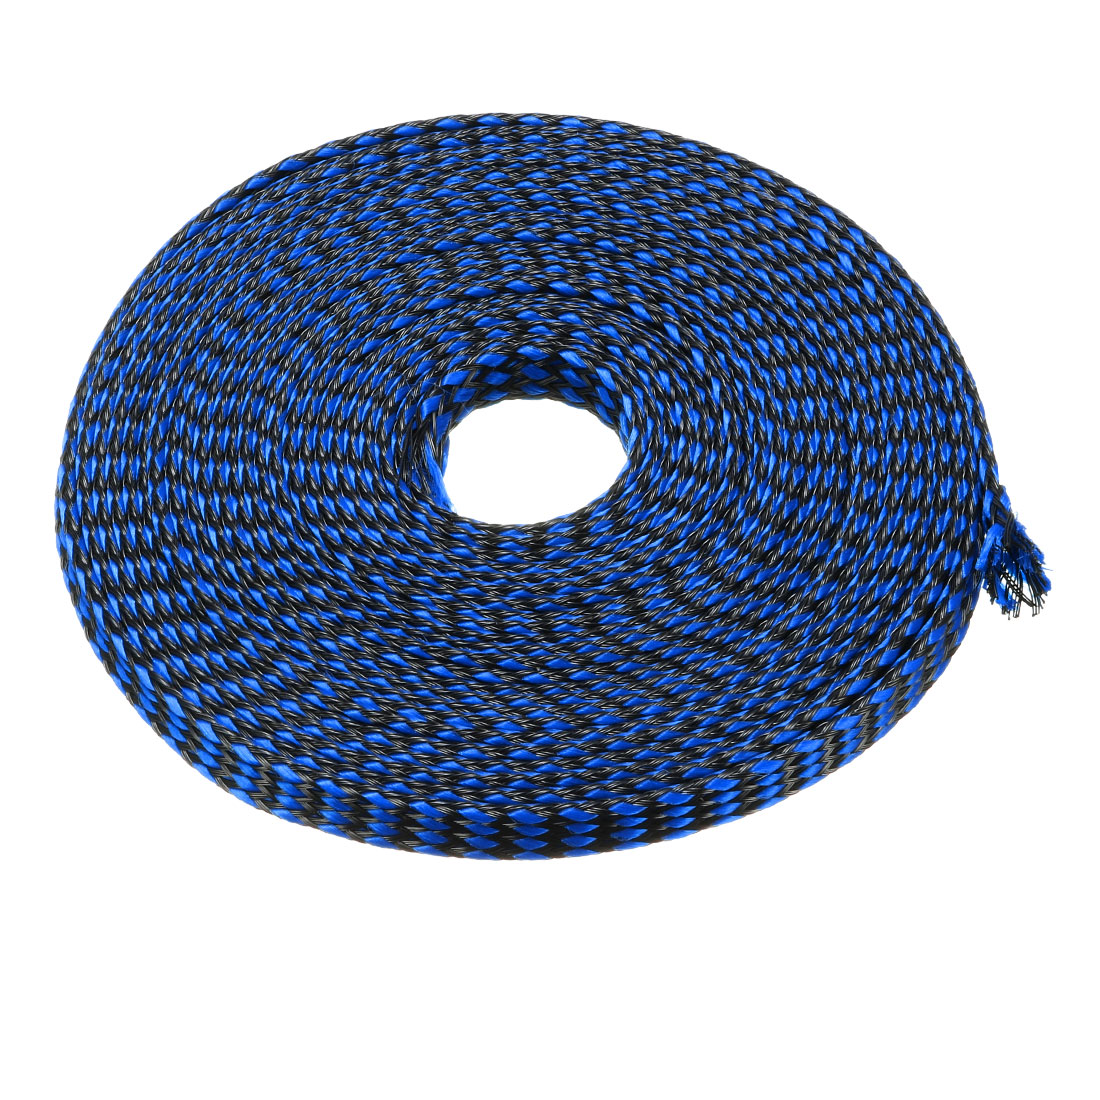 8mm Dia Tight Braided PET Expandable Sleeving Cable Wrap Sheath Black Blue 10M